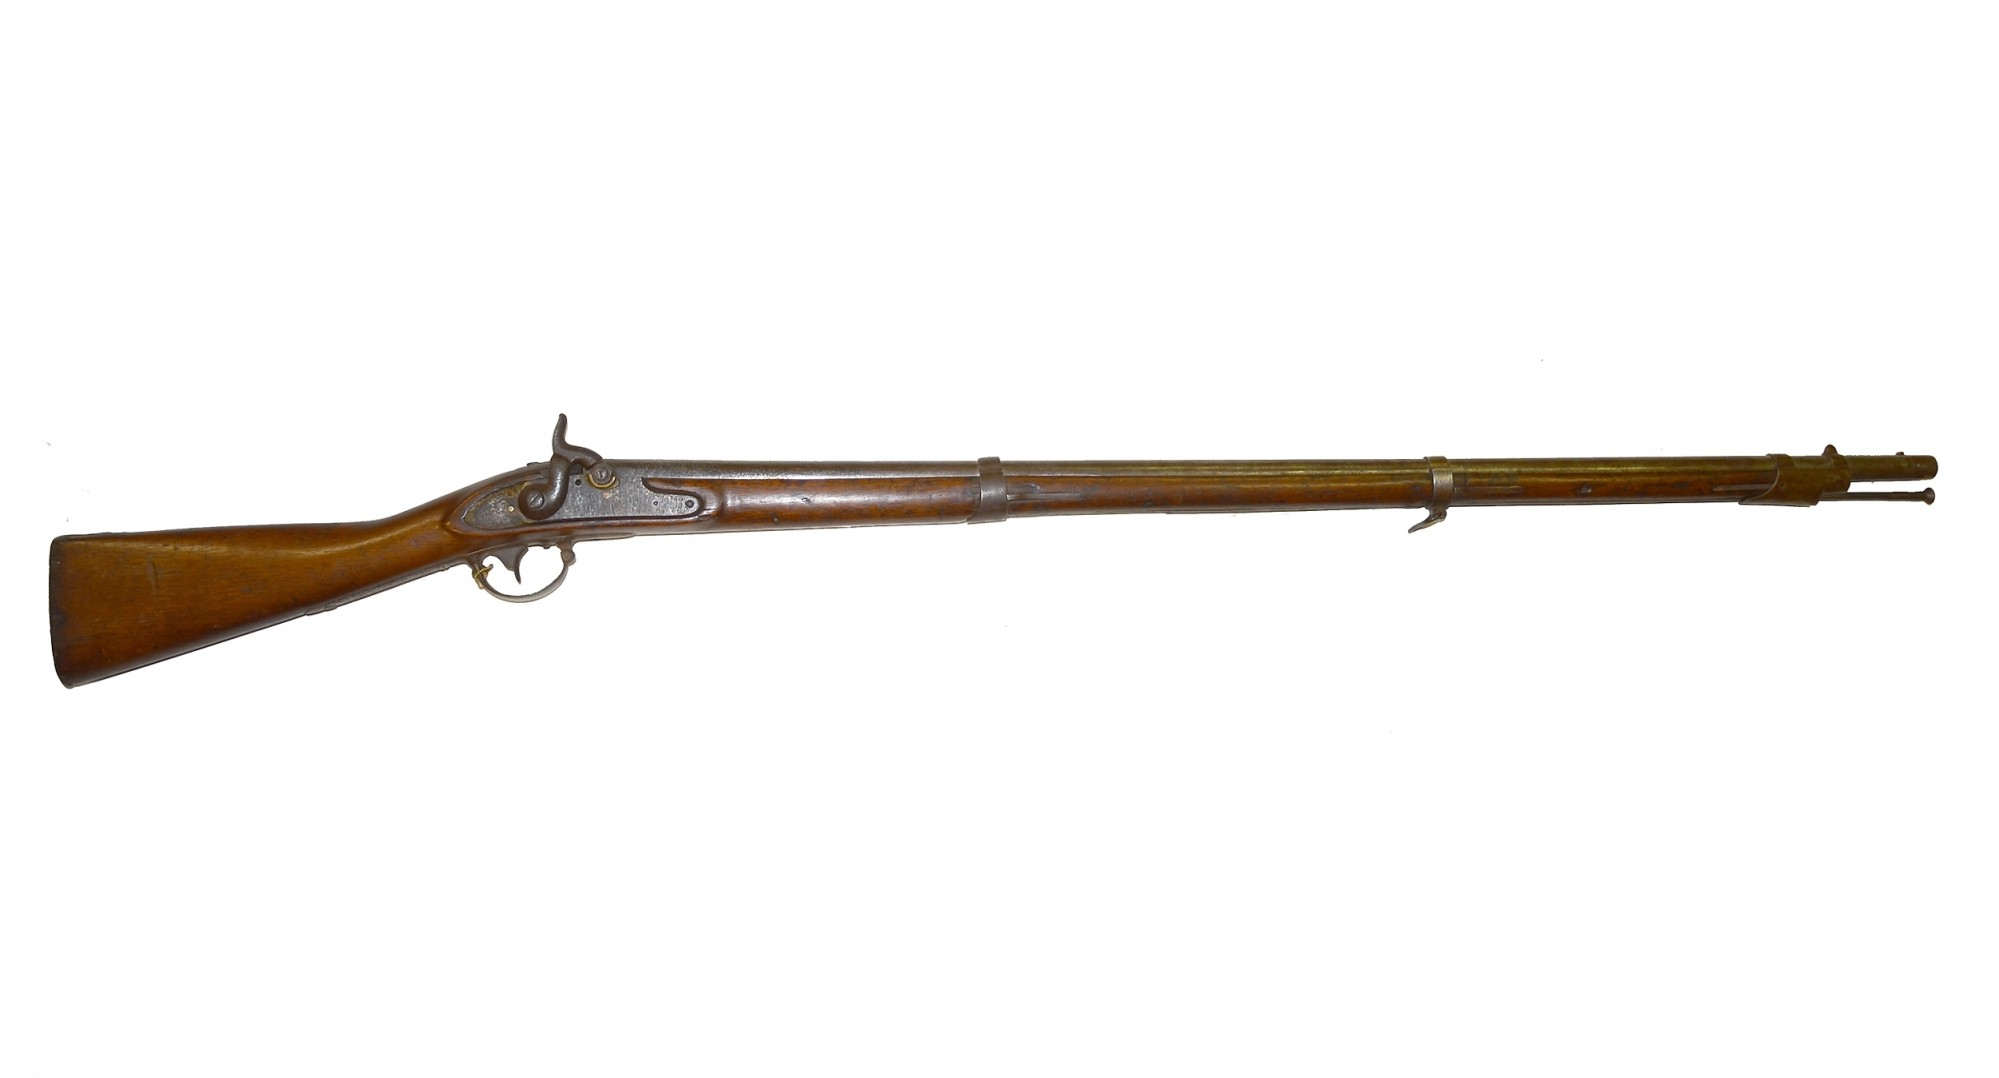 PRE-WAR, COLT-ALTERED, CONFEDERATE-IDENTIFIED MUSKET CARRIED BY PRIVATE WILLIAM EXALL, 21ST VA INFANTRY, WHO WAS KILLED IN ACTION